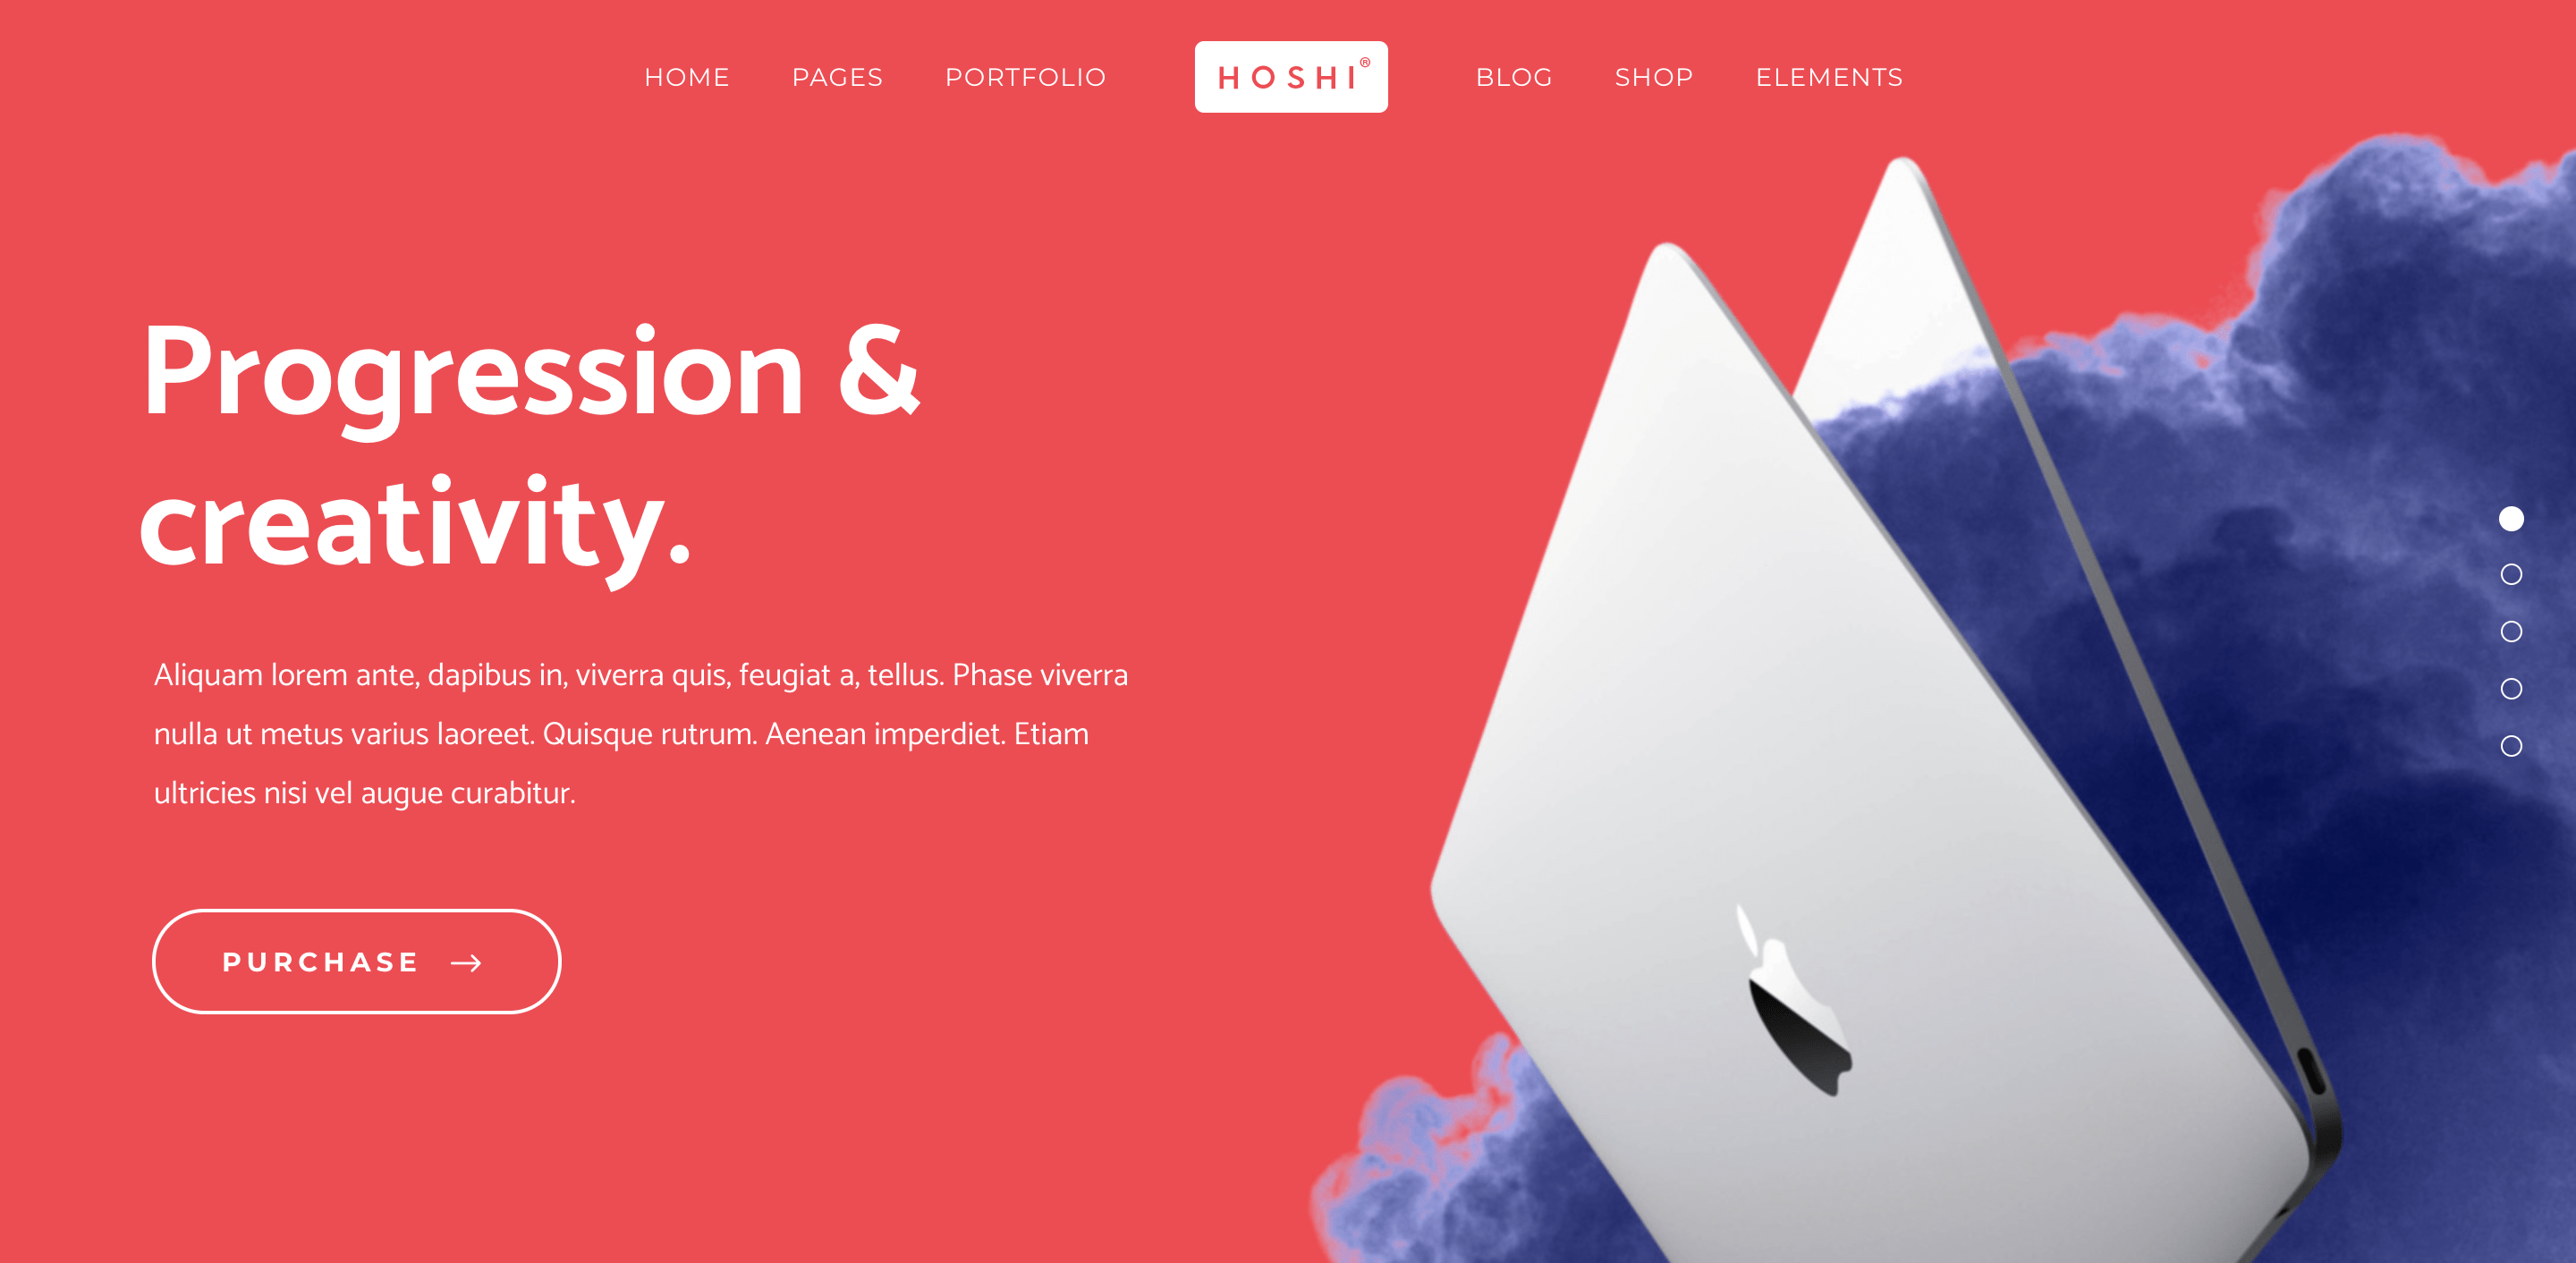 Hoshi - A Modern Theme for Digital Agencies and Freelancers.png